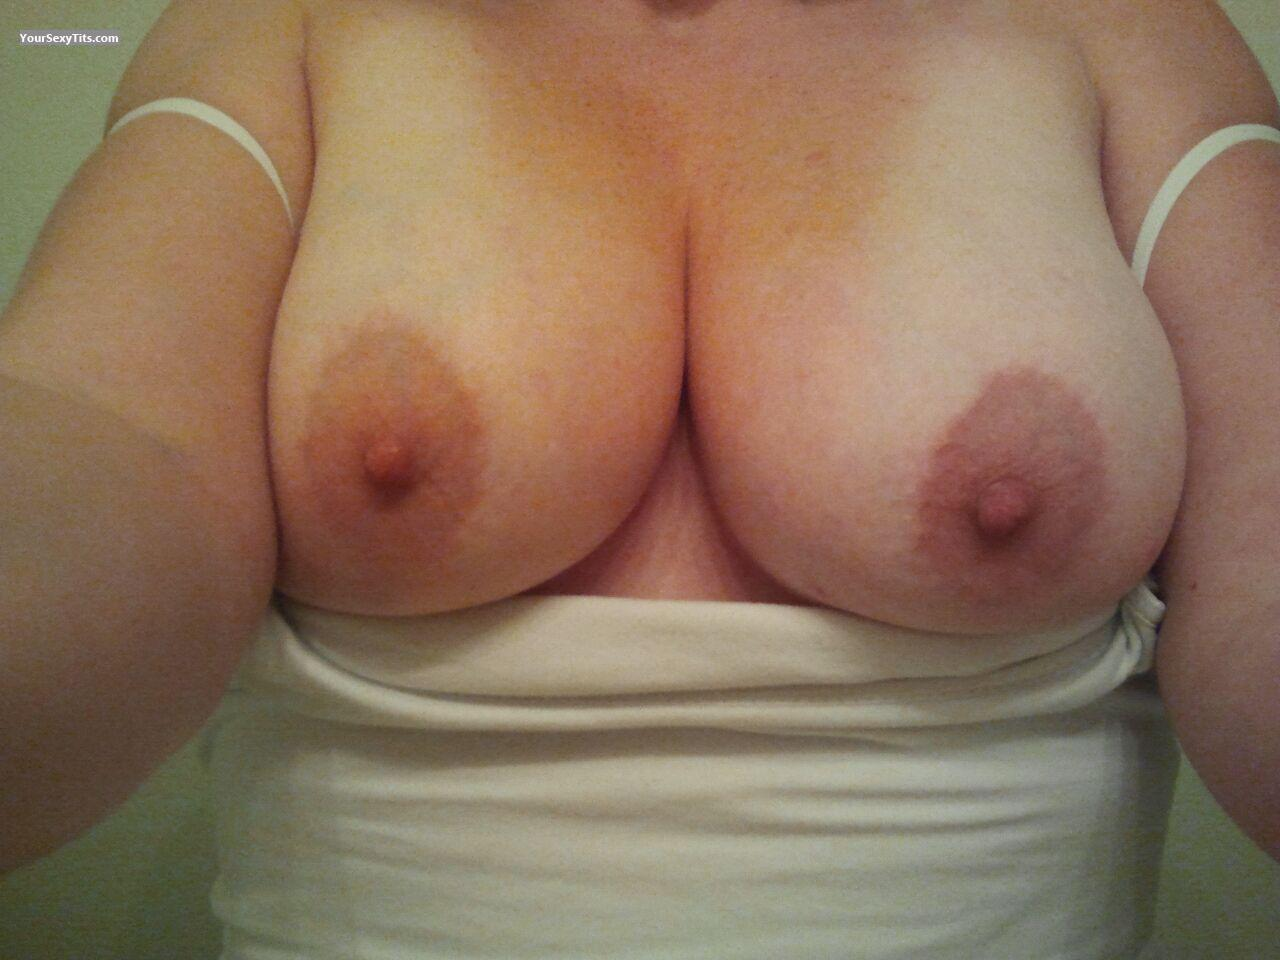 Tit Flash: My Big Tits (Selfie) - Scarlot Harlot from United States